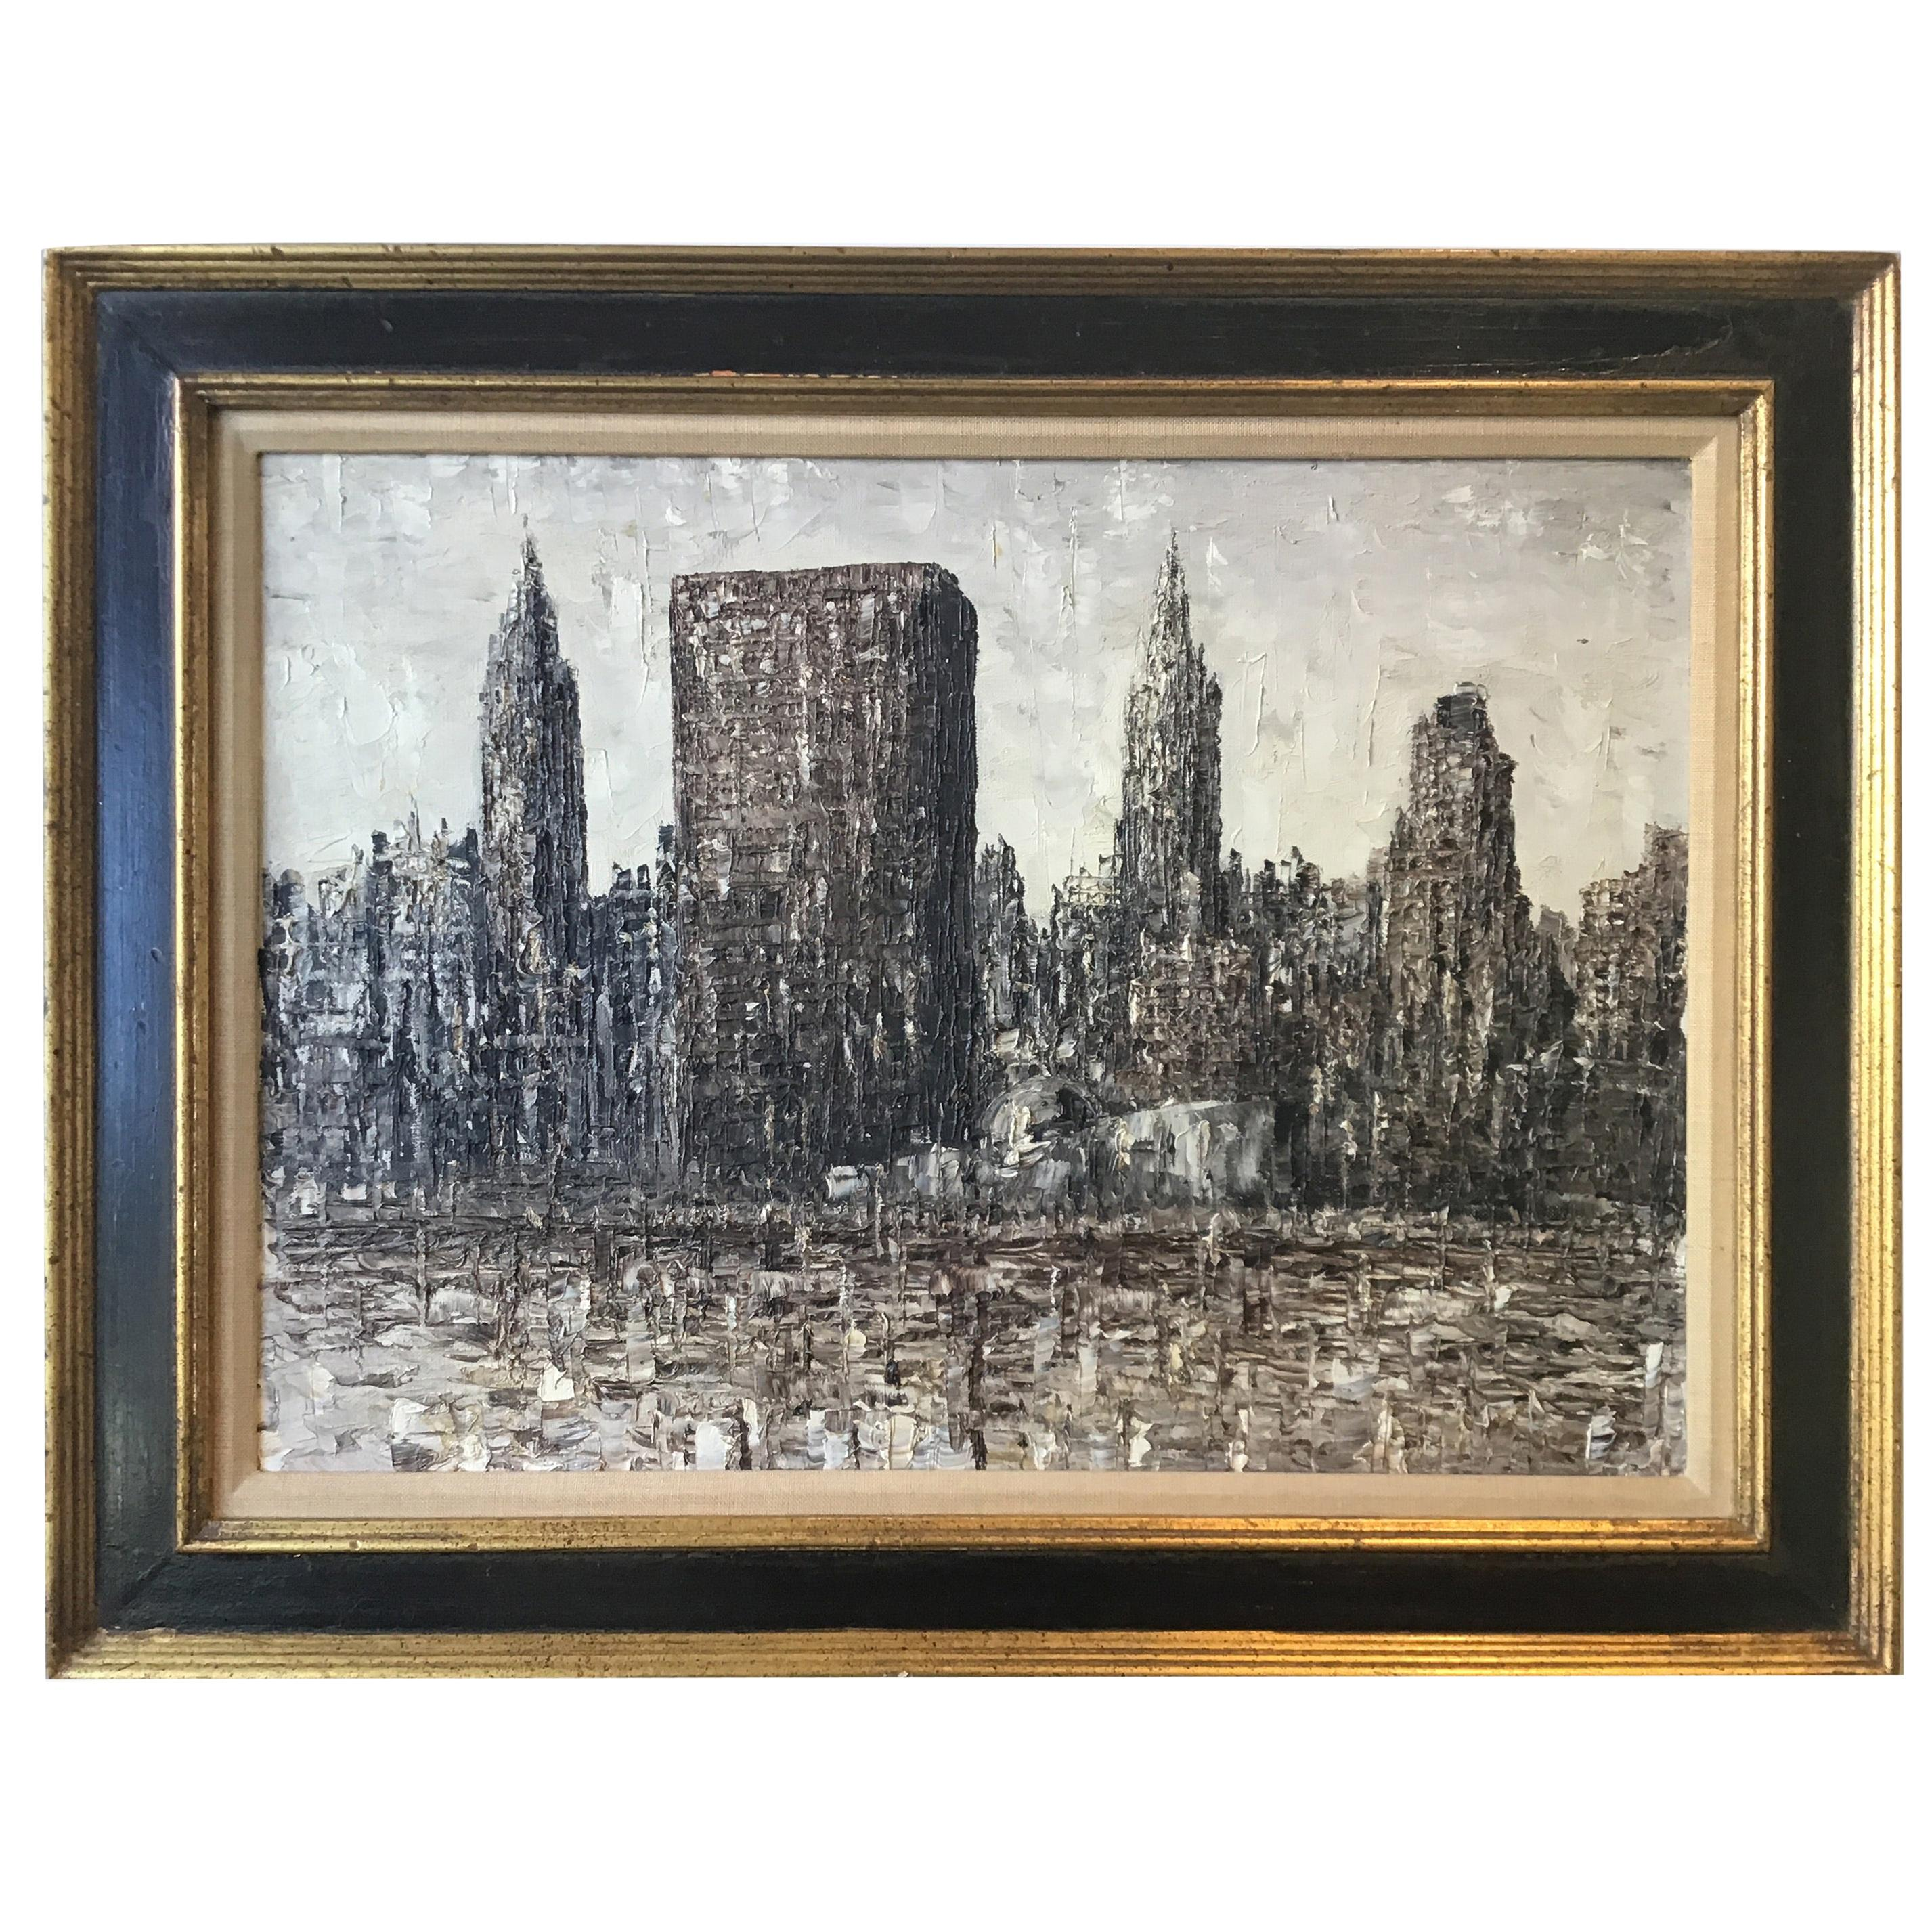 1950s Impasto Painting of New York City Skyline Showing the U.N. Building